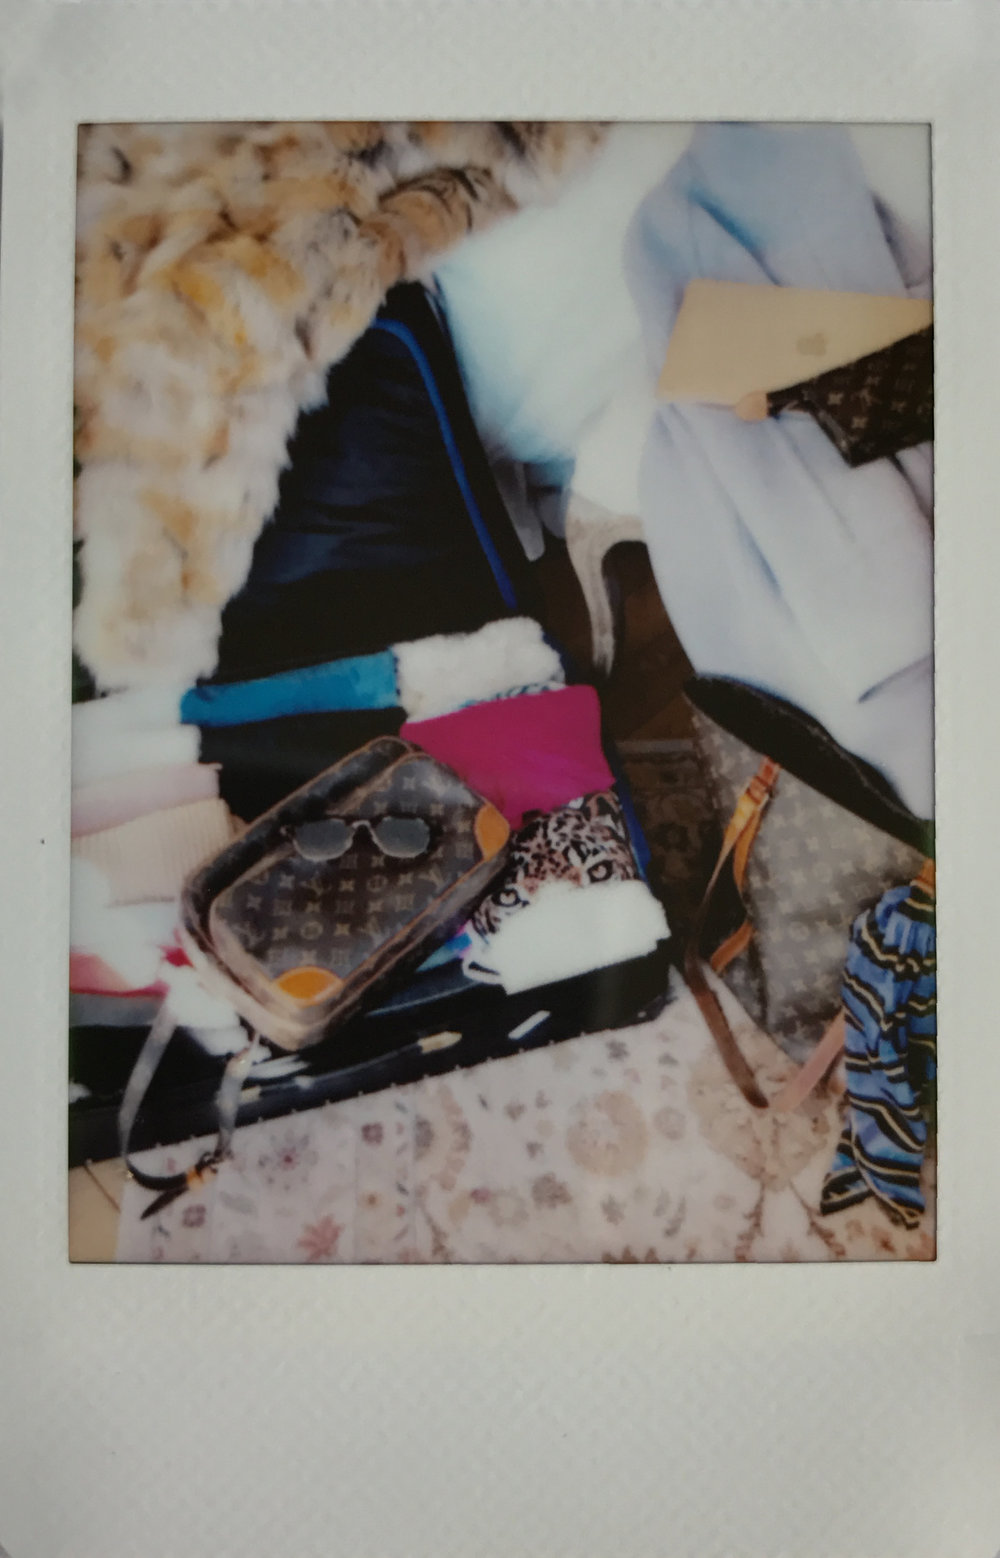 European Travel Wardrobe Polaroid Ashley Goodwin